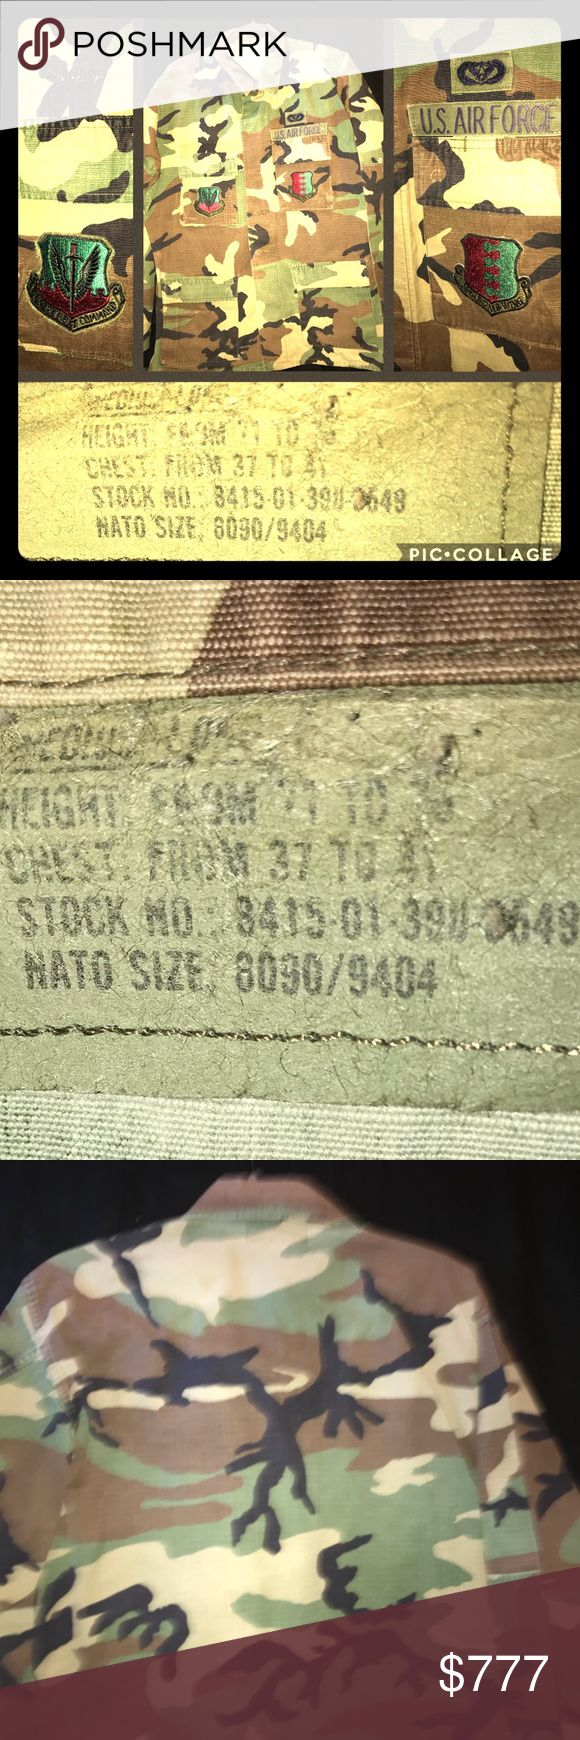 VTG 100%AUTHENTIC MILITARY CAMOUFLAGED COAT M/L VTG 100%AUTHENTIC MILITARY CAMOUFLAGED COAT M/L•VTG 100%AUTHENTIC MILITARY CAMO FEILD COAT MED-LG  •PLZ NOTW THZ IS A VTG ITEM SO ITS NOT FLAWLESS•It is on EUC ESPECIALLY considering that it's VTG AND JUST ITS AGE,  PLZ SEE PIX FOR REF. •SEE PIX #2 FOR EXACT MEASUREMENTS •ASK ANY ?? •BE BLESSED XO. •Colors. BROWN GREEN BLACK CAMO Black Lettering and Black and AQUA TEAL BLUE&RED EMBROIDERED Golden Bronze Patches•PLZ ASK ANY ?? Vintage Jackets…